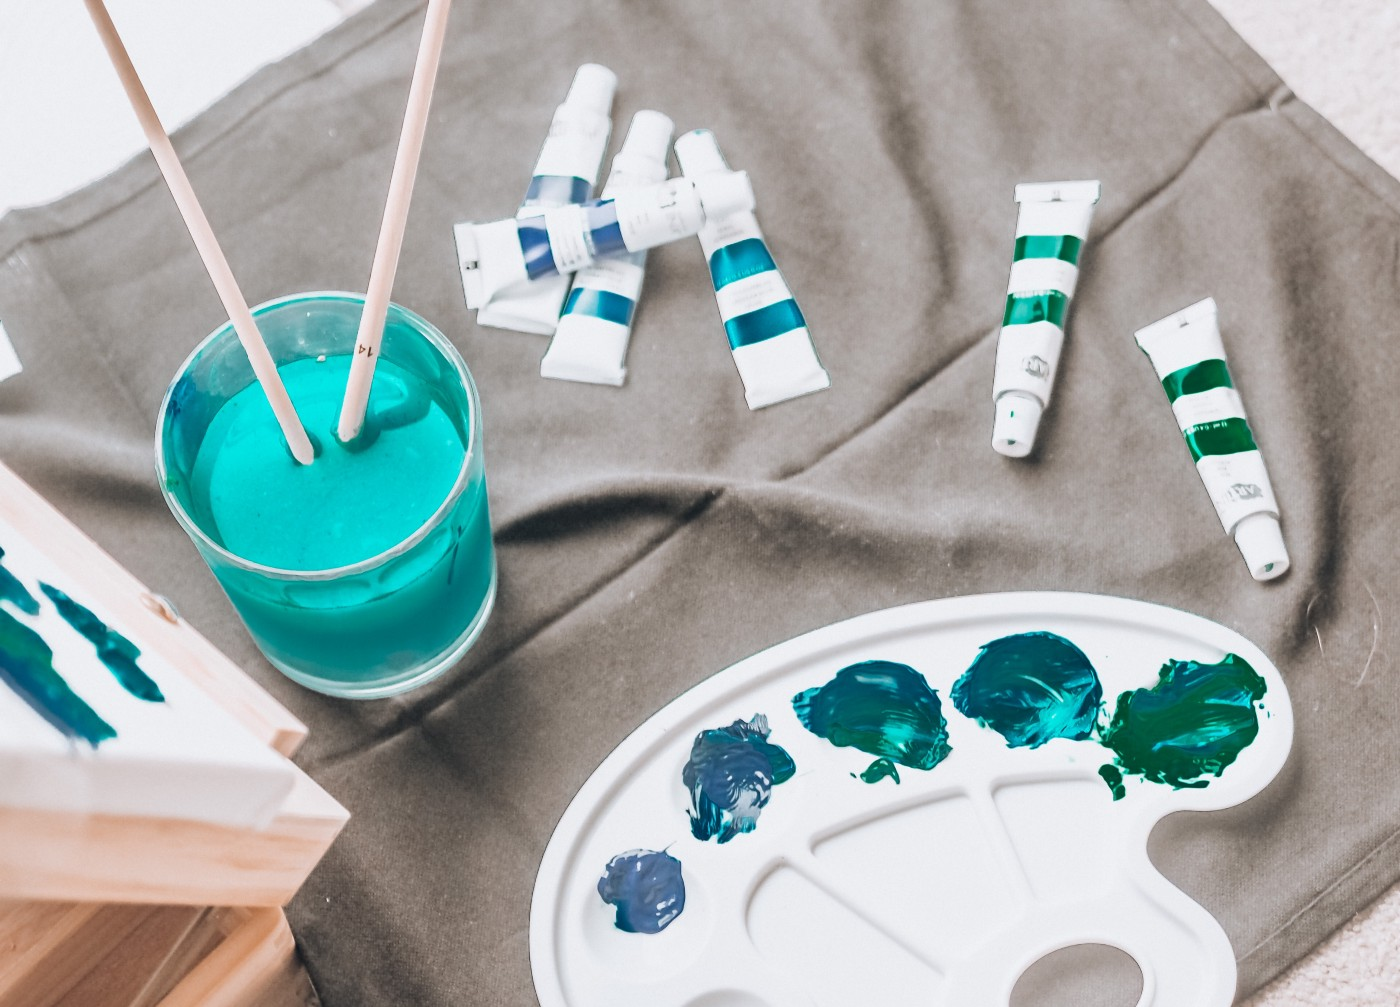 paintbrushes and a palate of paints